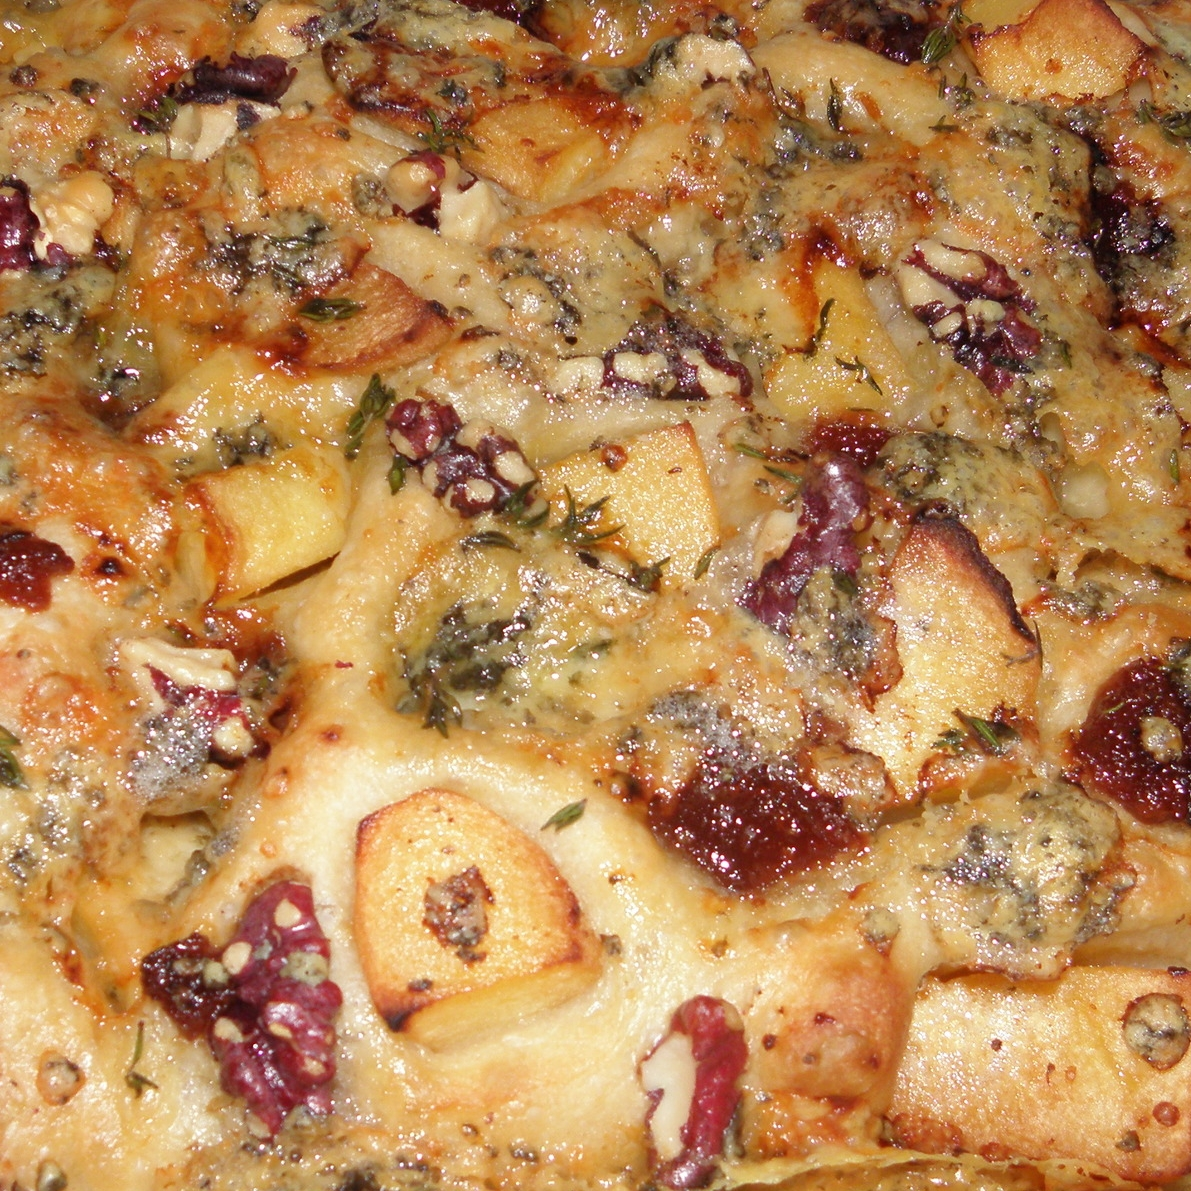 Stilton and quince focaccia